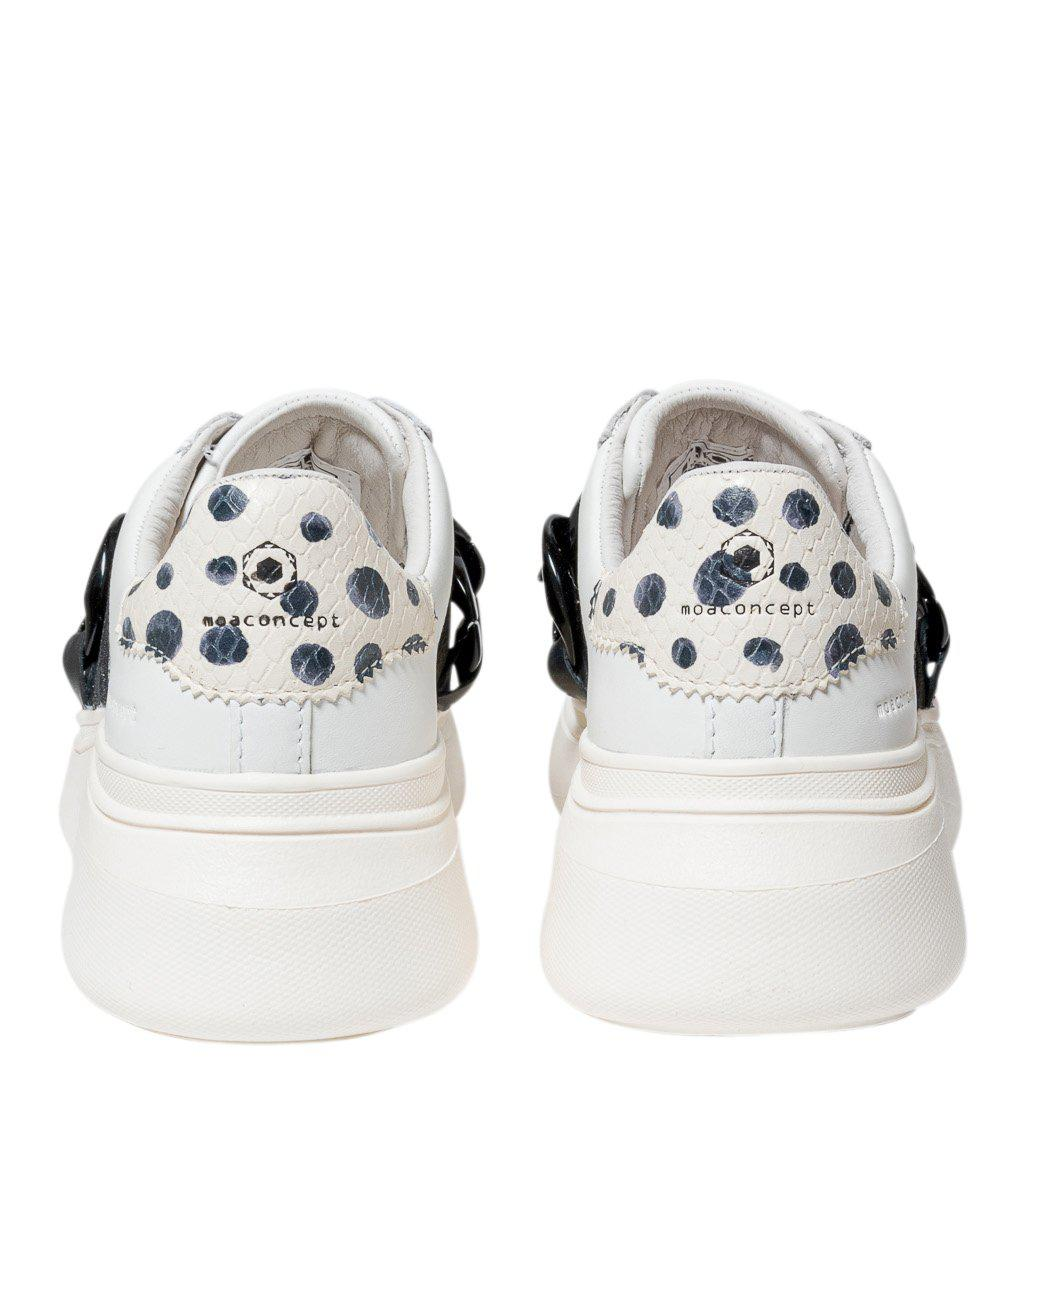 SLIP-ON CHAIN SNEAKERS